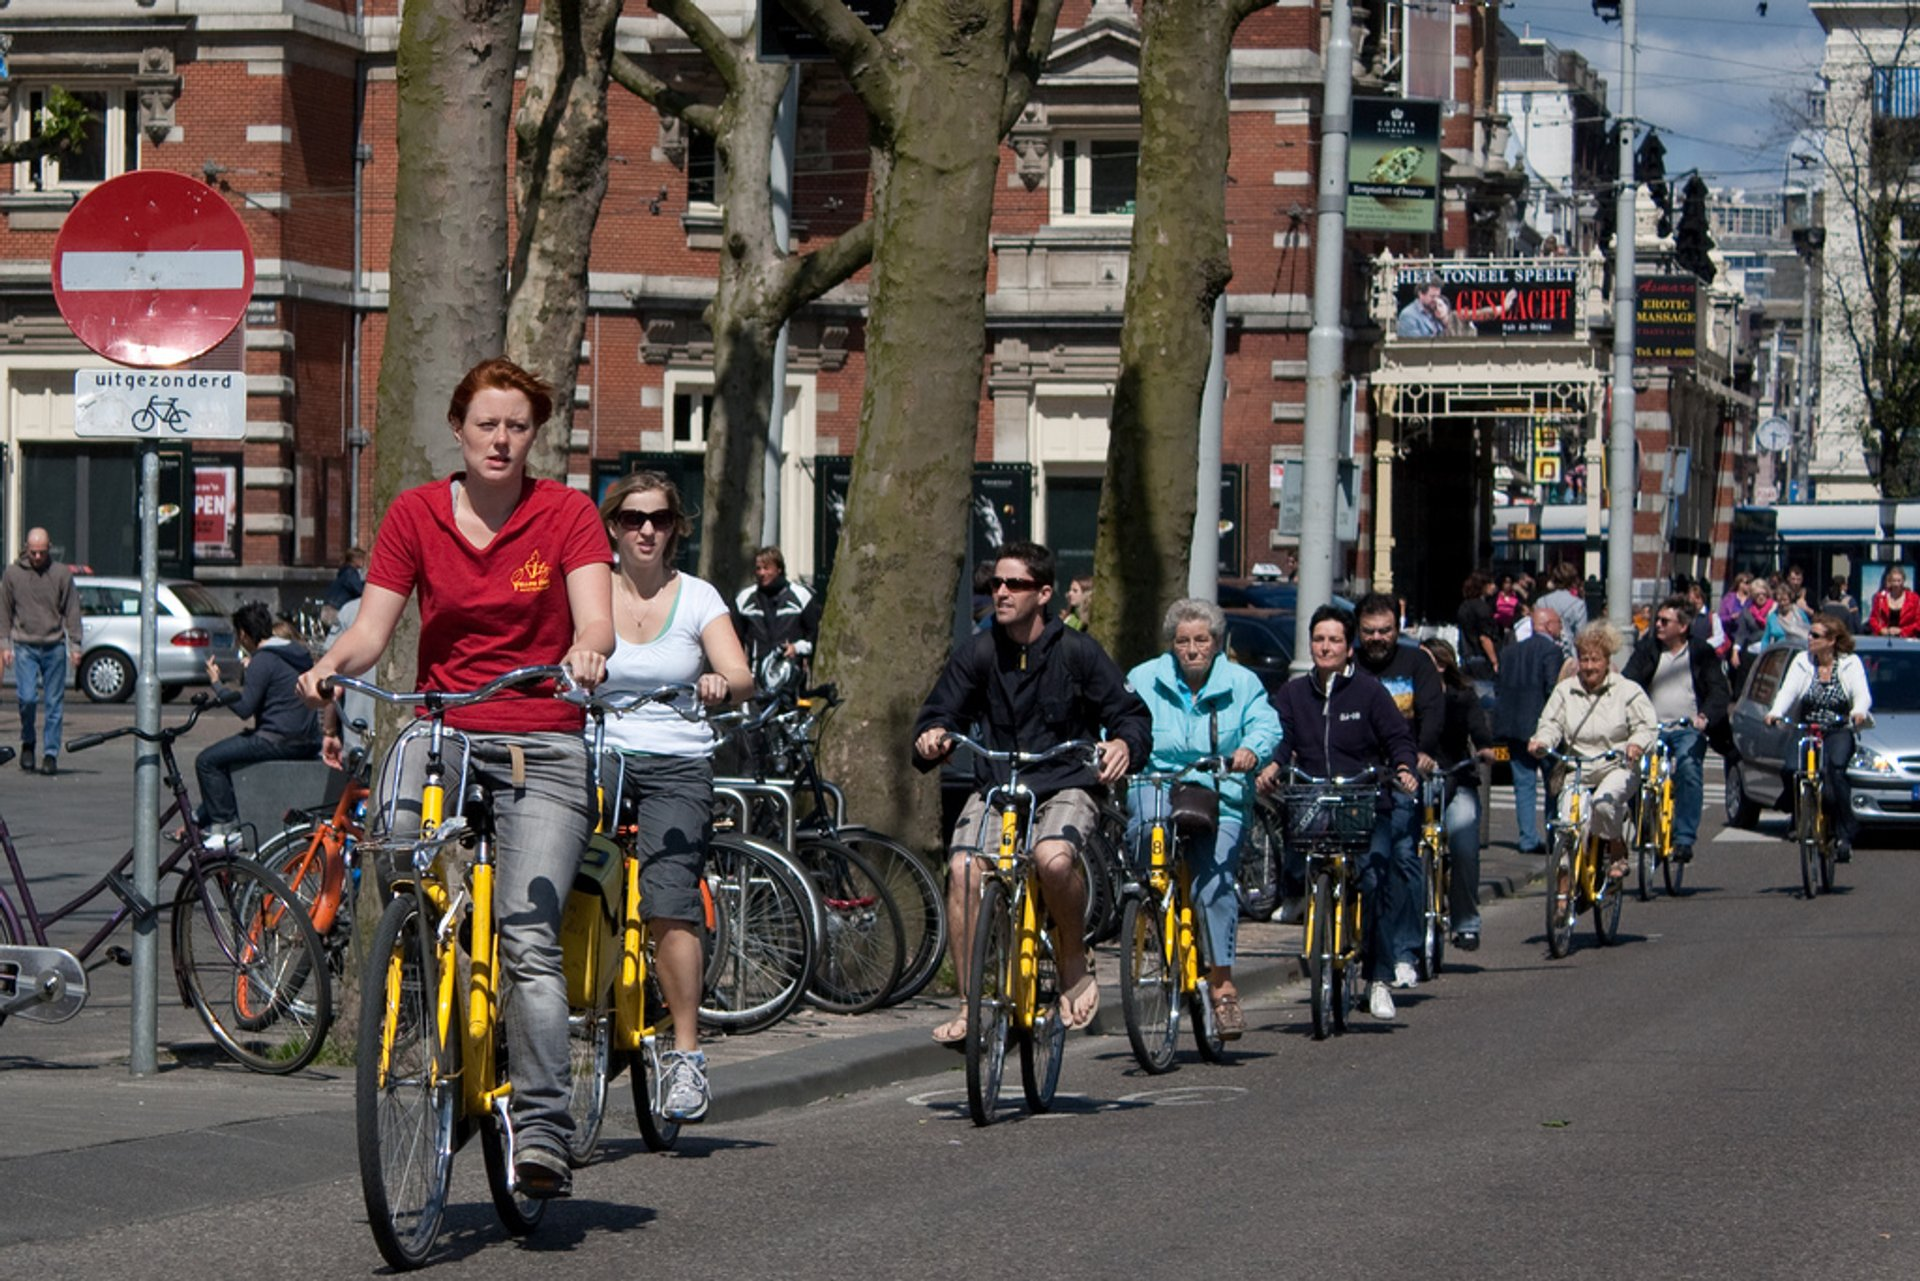 Biking in Amsterdam - Best Season 2020